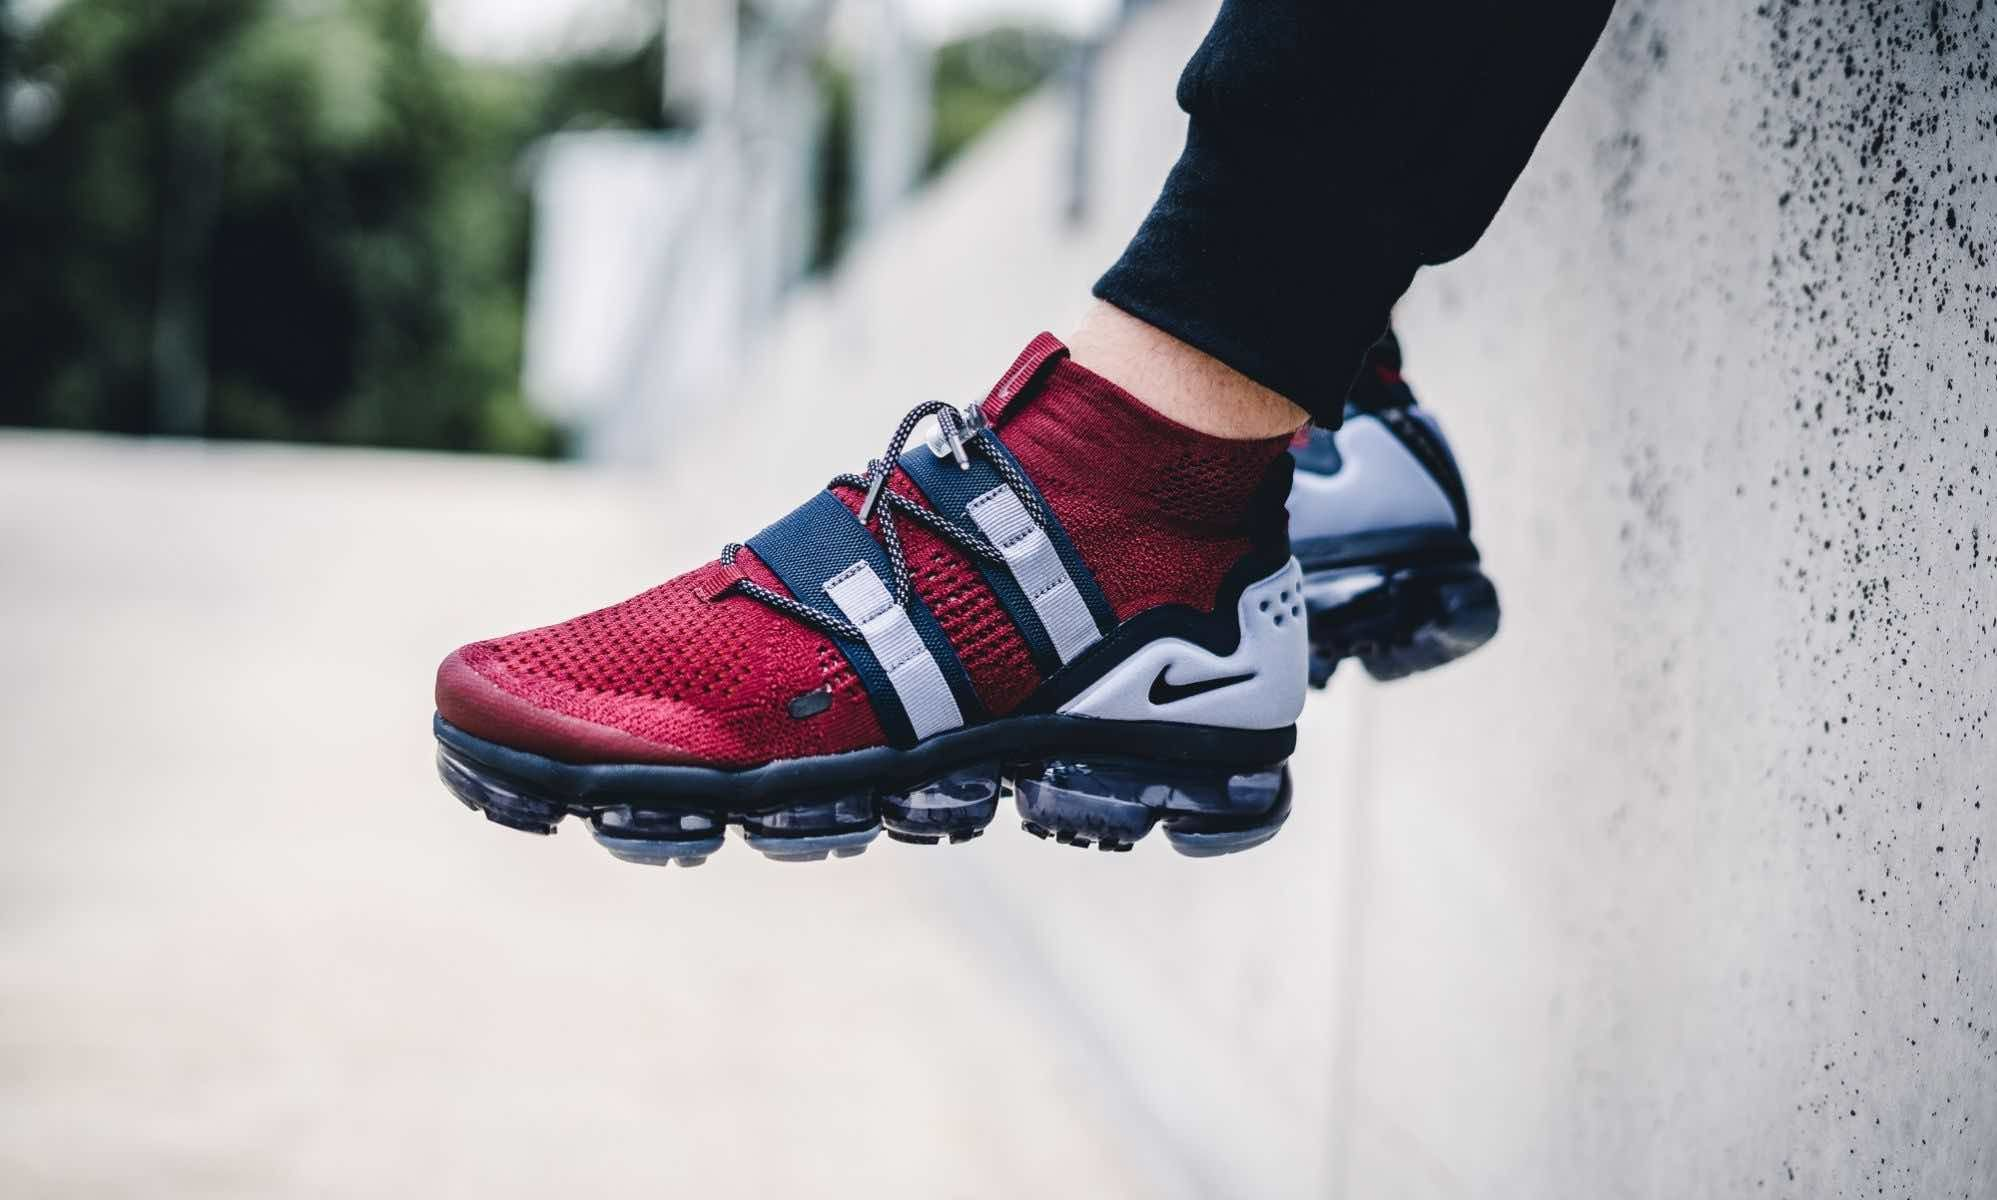 new styles e6415 5ad15 Nike Air Vapormax Flyknit Utility Burgundy / Blue | shoes ...